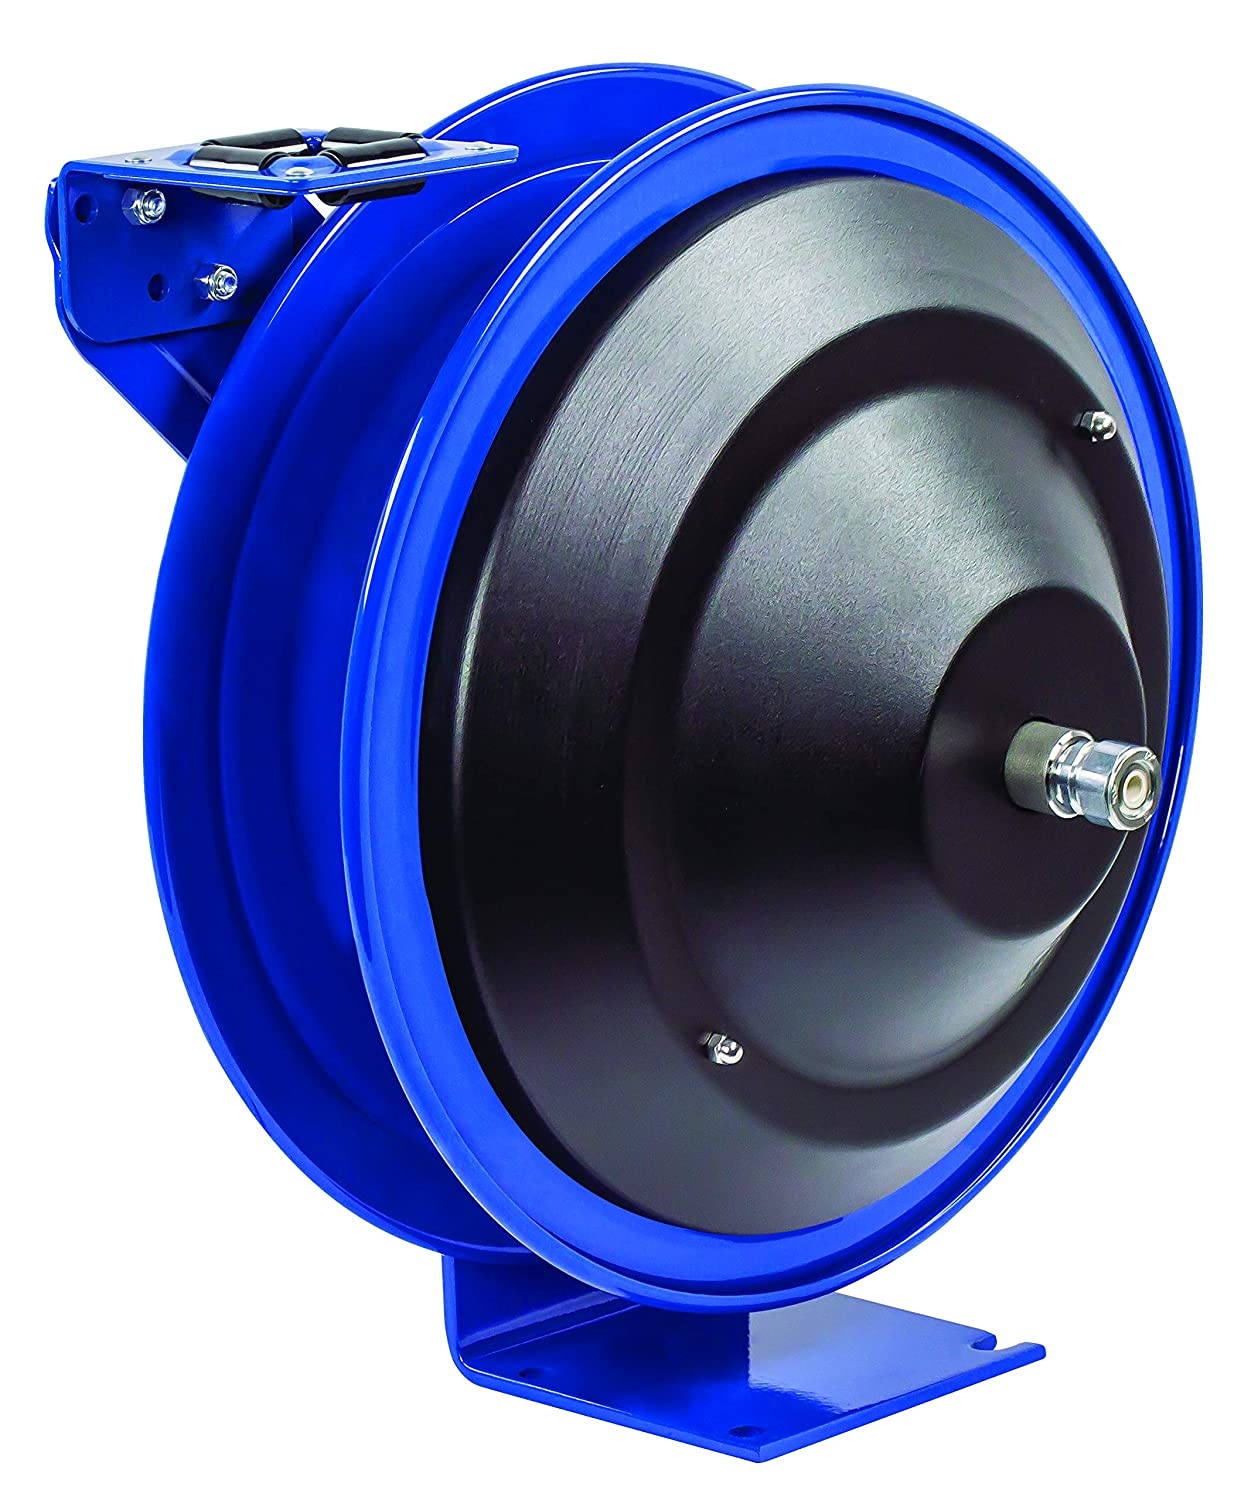 Coxreels PC17L-5010 Power Cord Spring Rewind Reels: Less Cord & Accessory